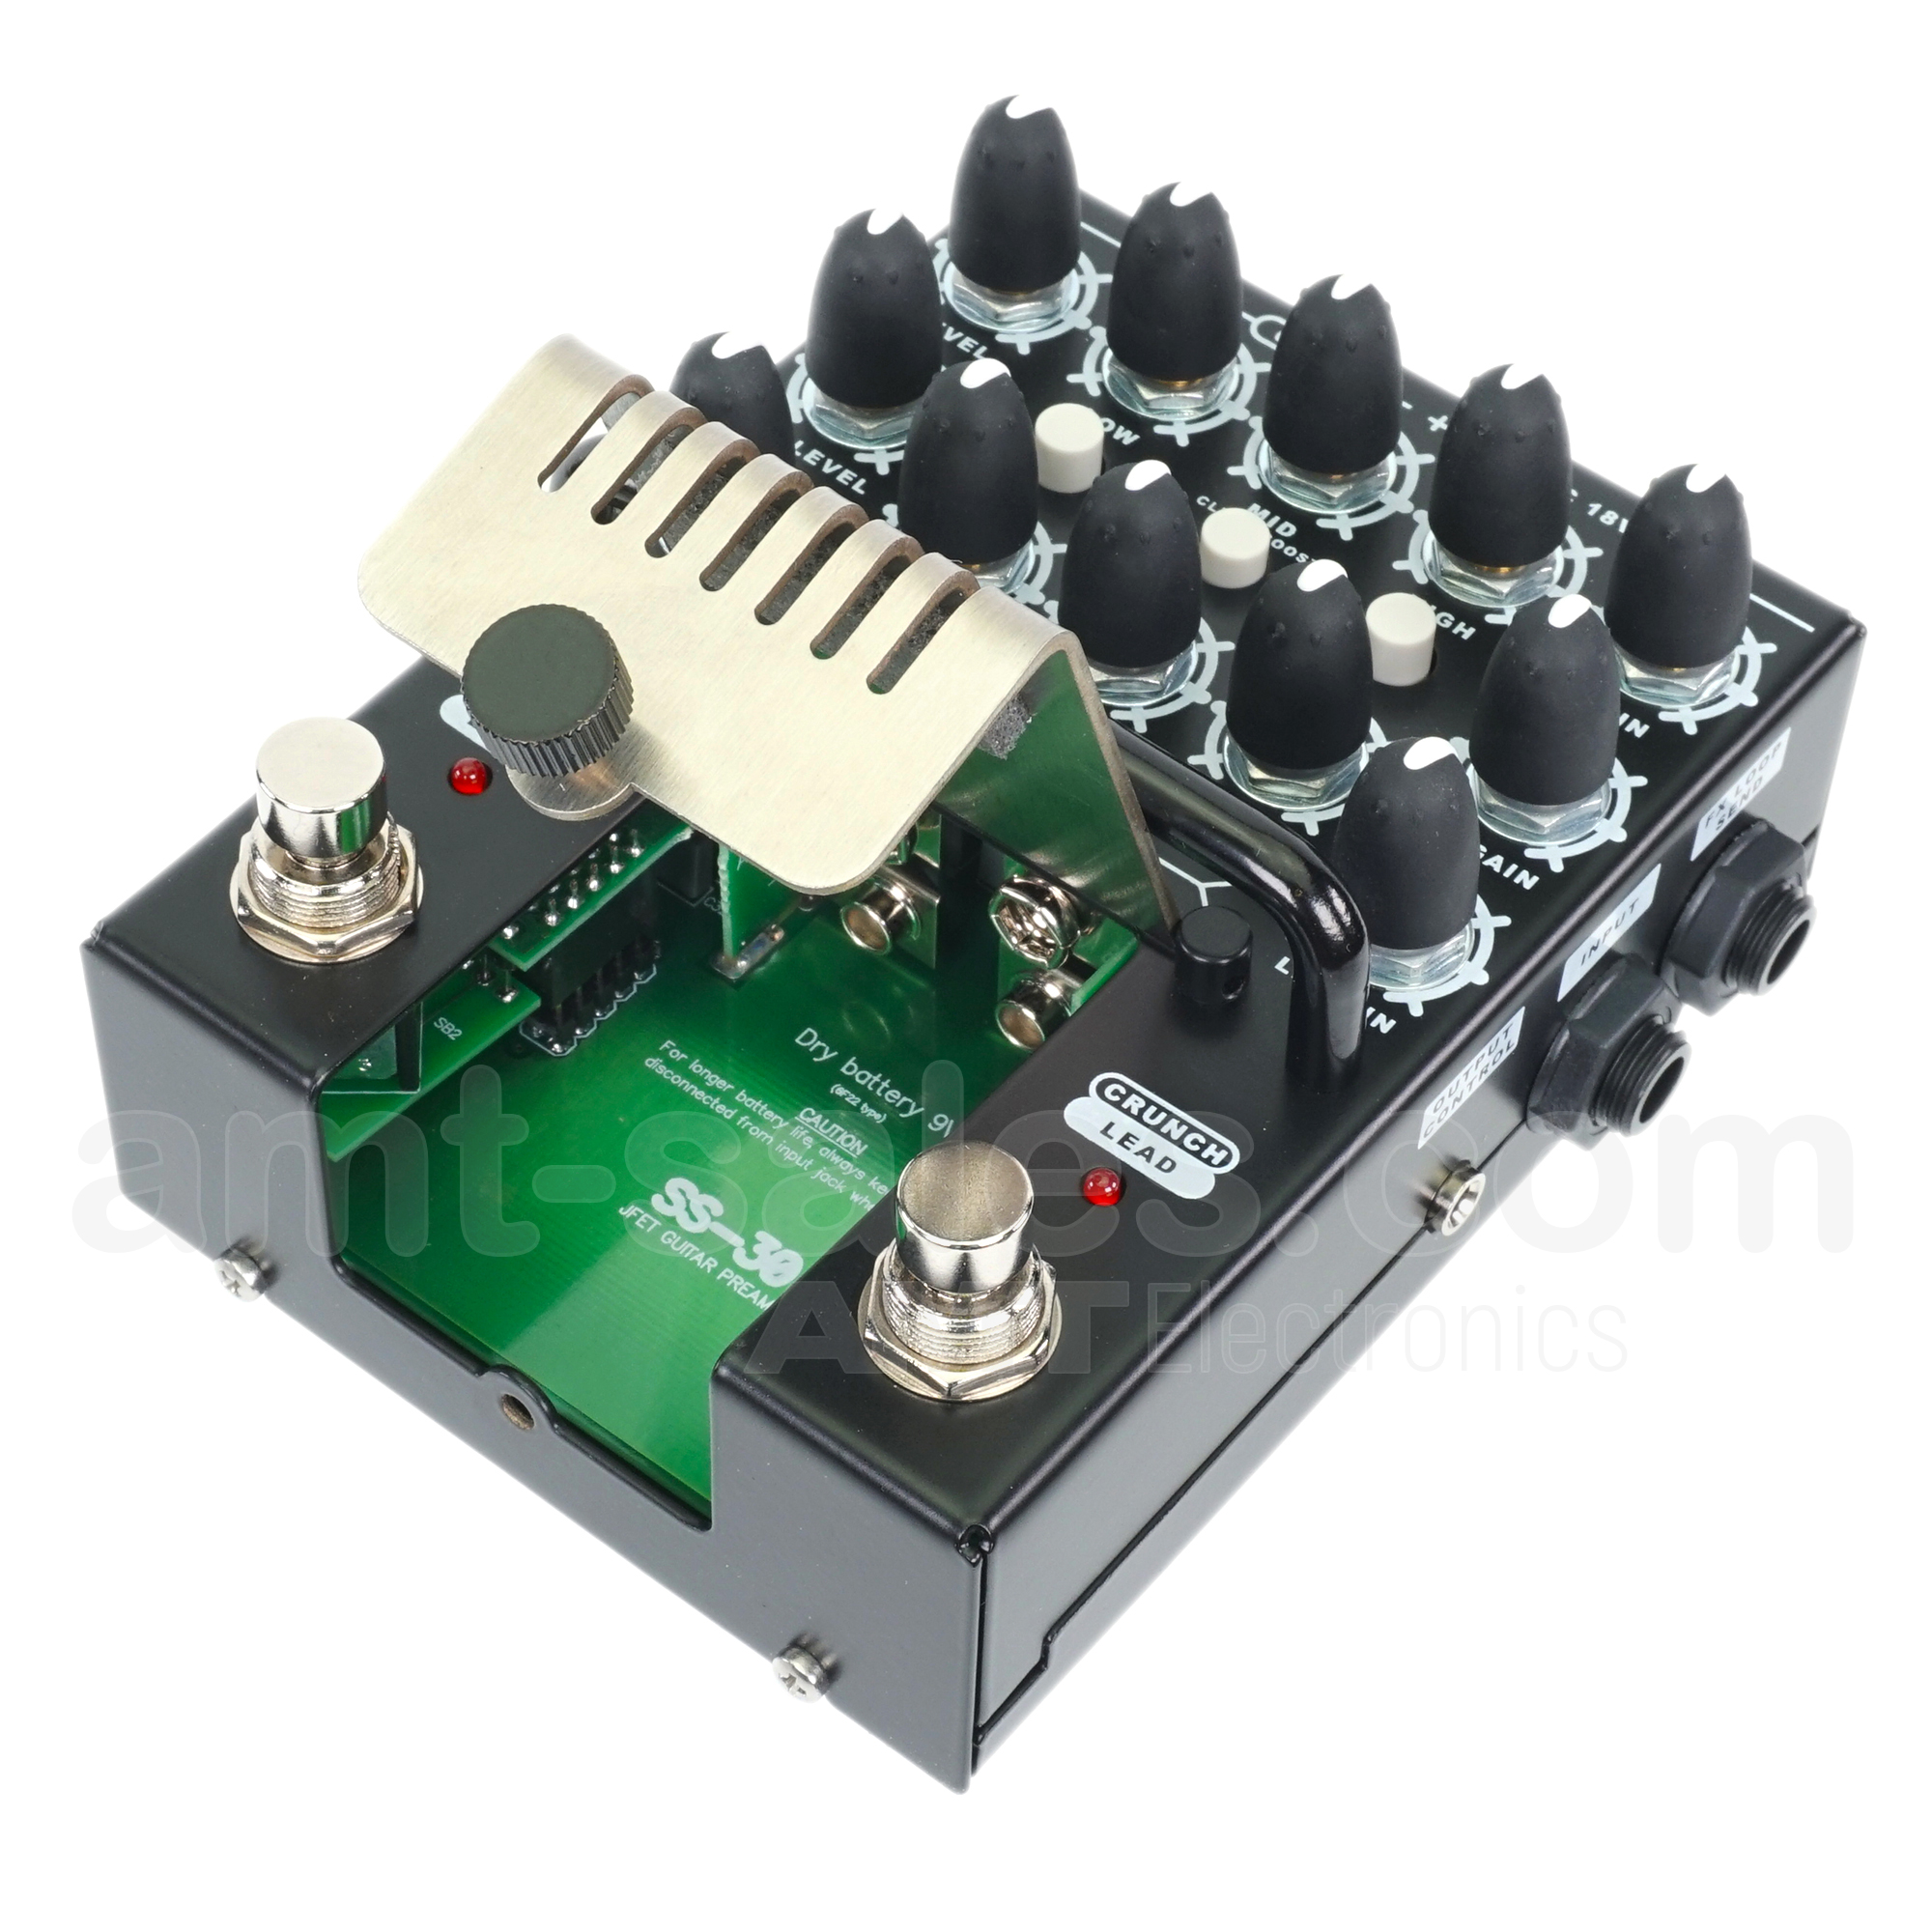 AMT BULAVA SS-30 - 3-channel JFET Guitar Preamp